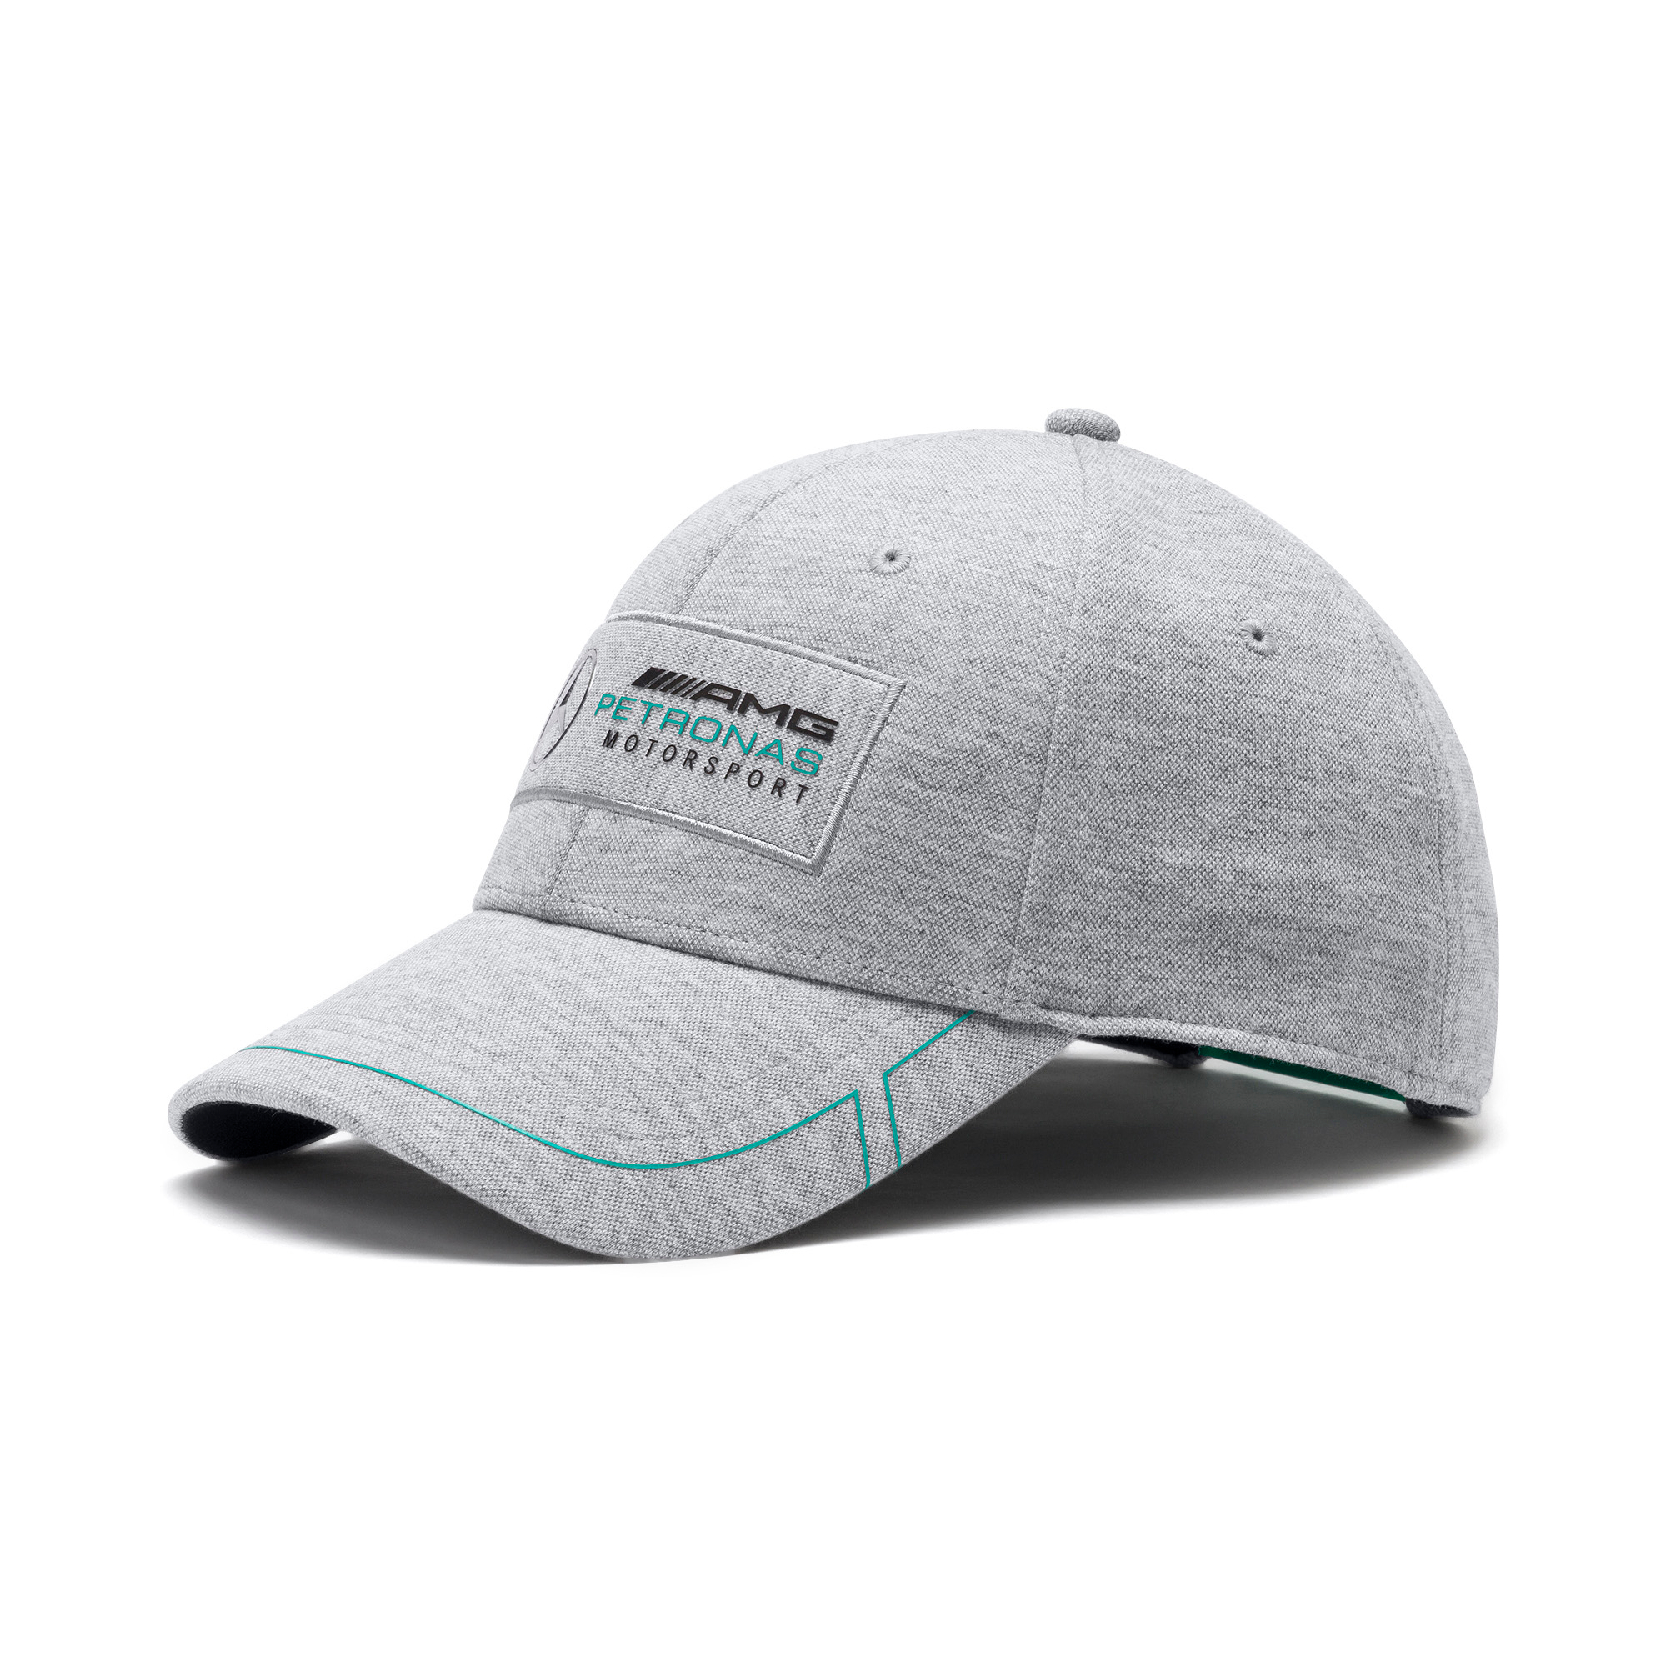 Mercedes AMG Petronas F1 Puma Baseball Cap SILVER Hat Adults One Size | Caps & Hats | TIFOSO ...